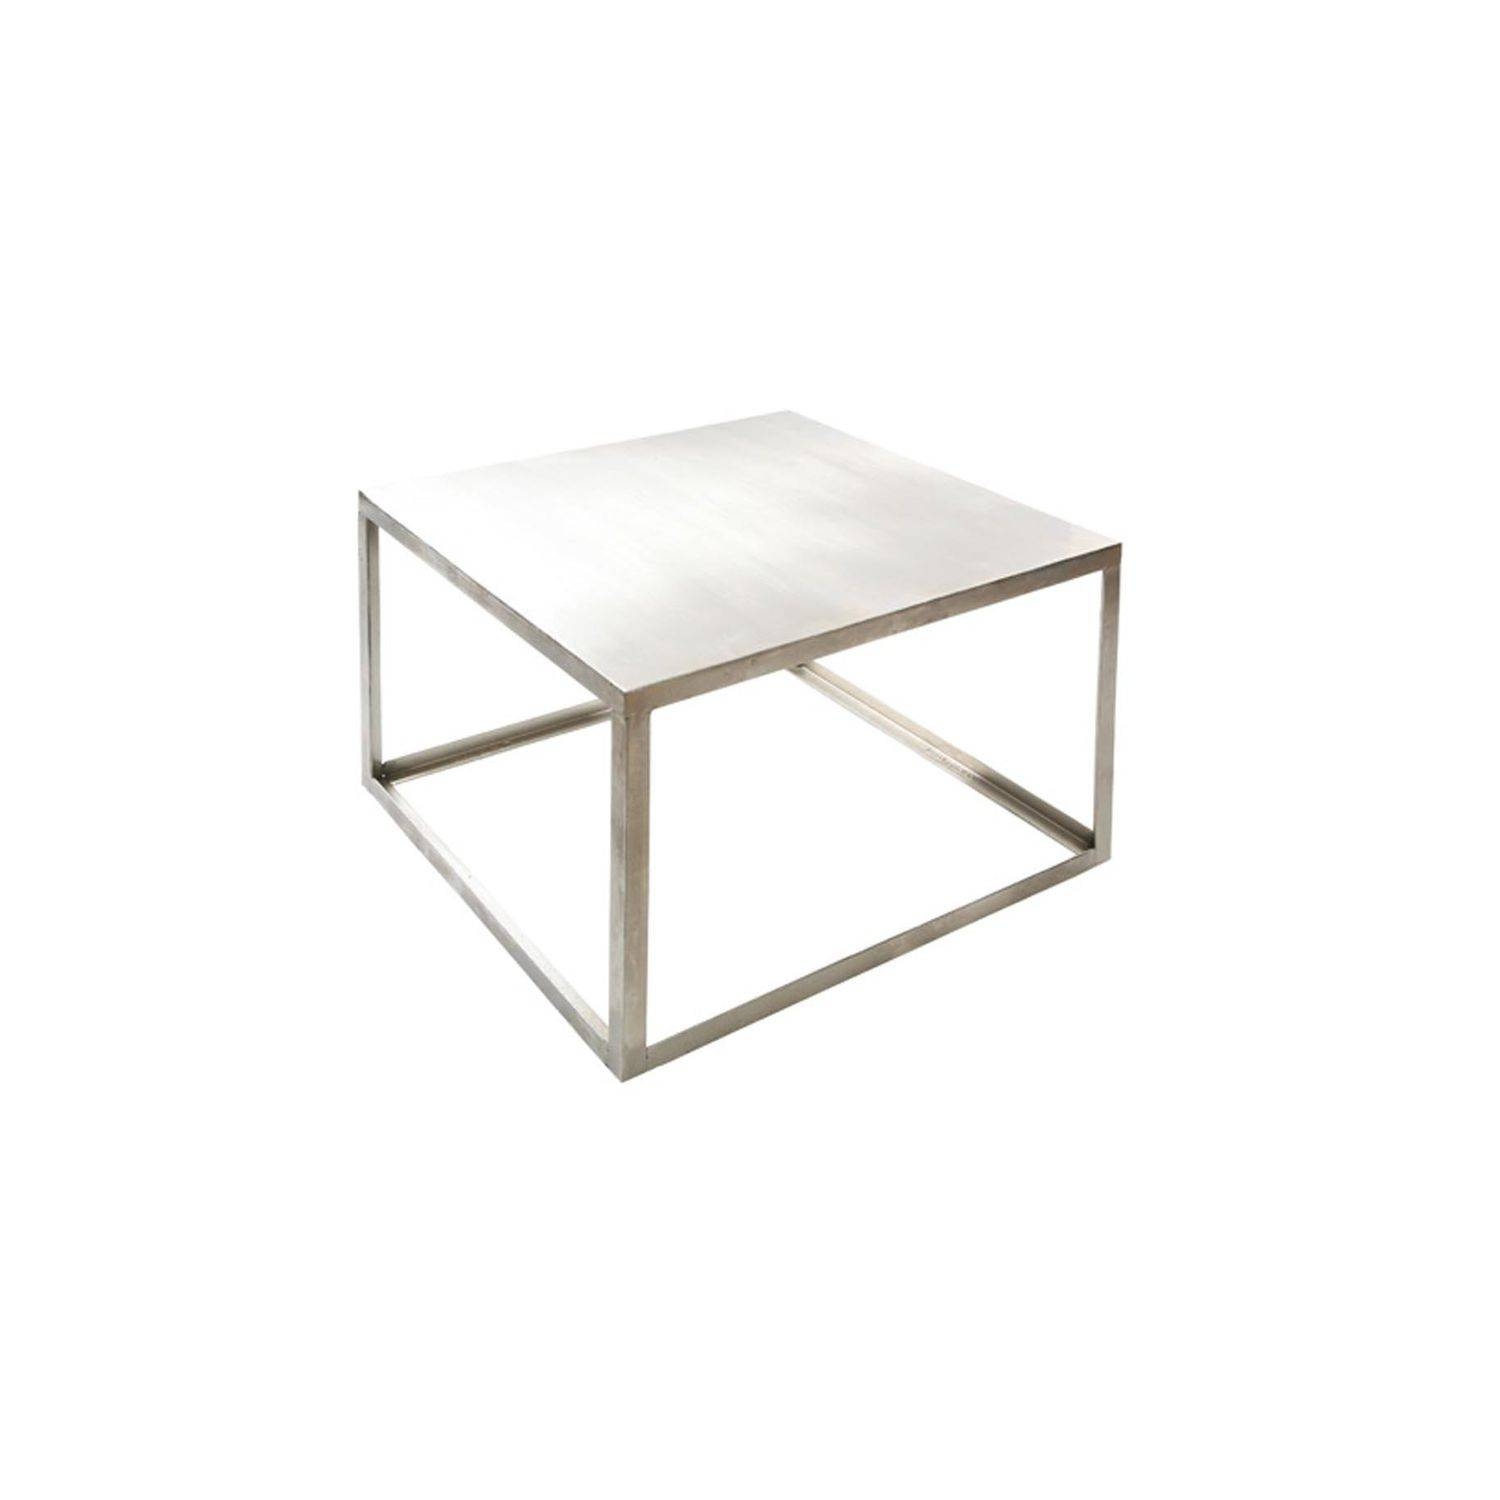 Industrial Style Coffee Table / Metal / Rectangular / Square regarding Coffee Table Industrial Style (Image 24 of 30)